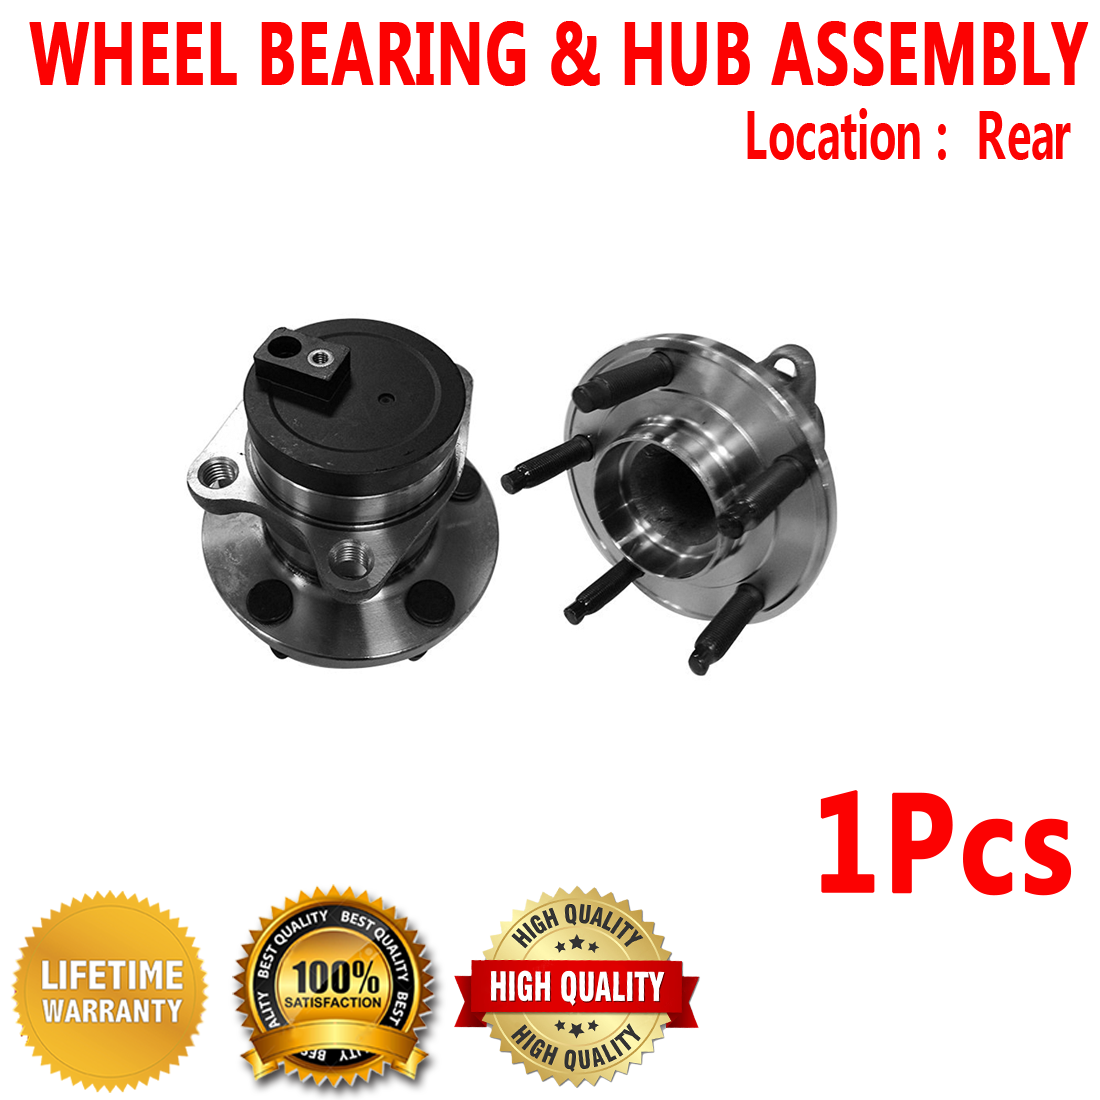 One Bearing Included with Two Years Warranty 2011 fits Mazda 3 Rear Wheel Bearing and Hub Assembly Note: FWD